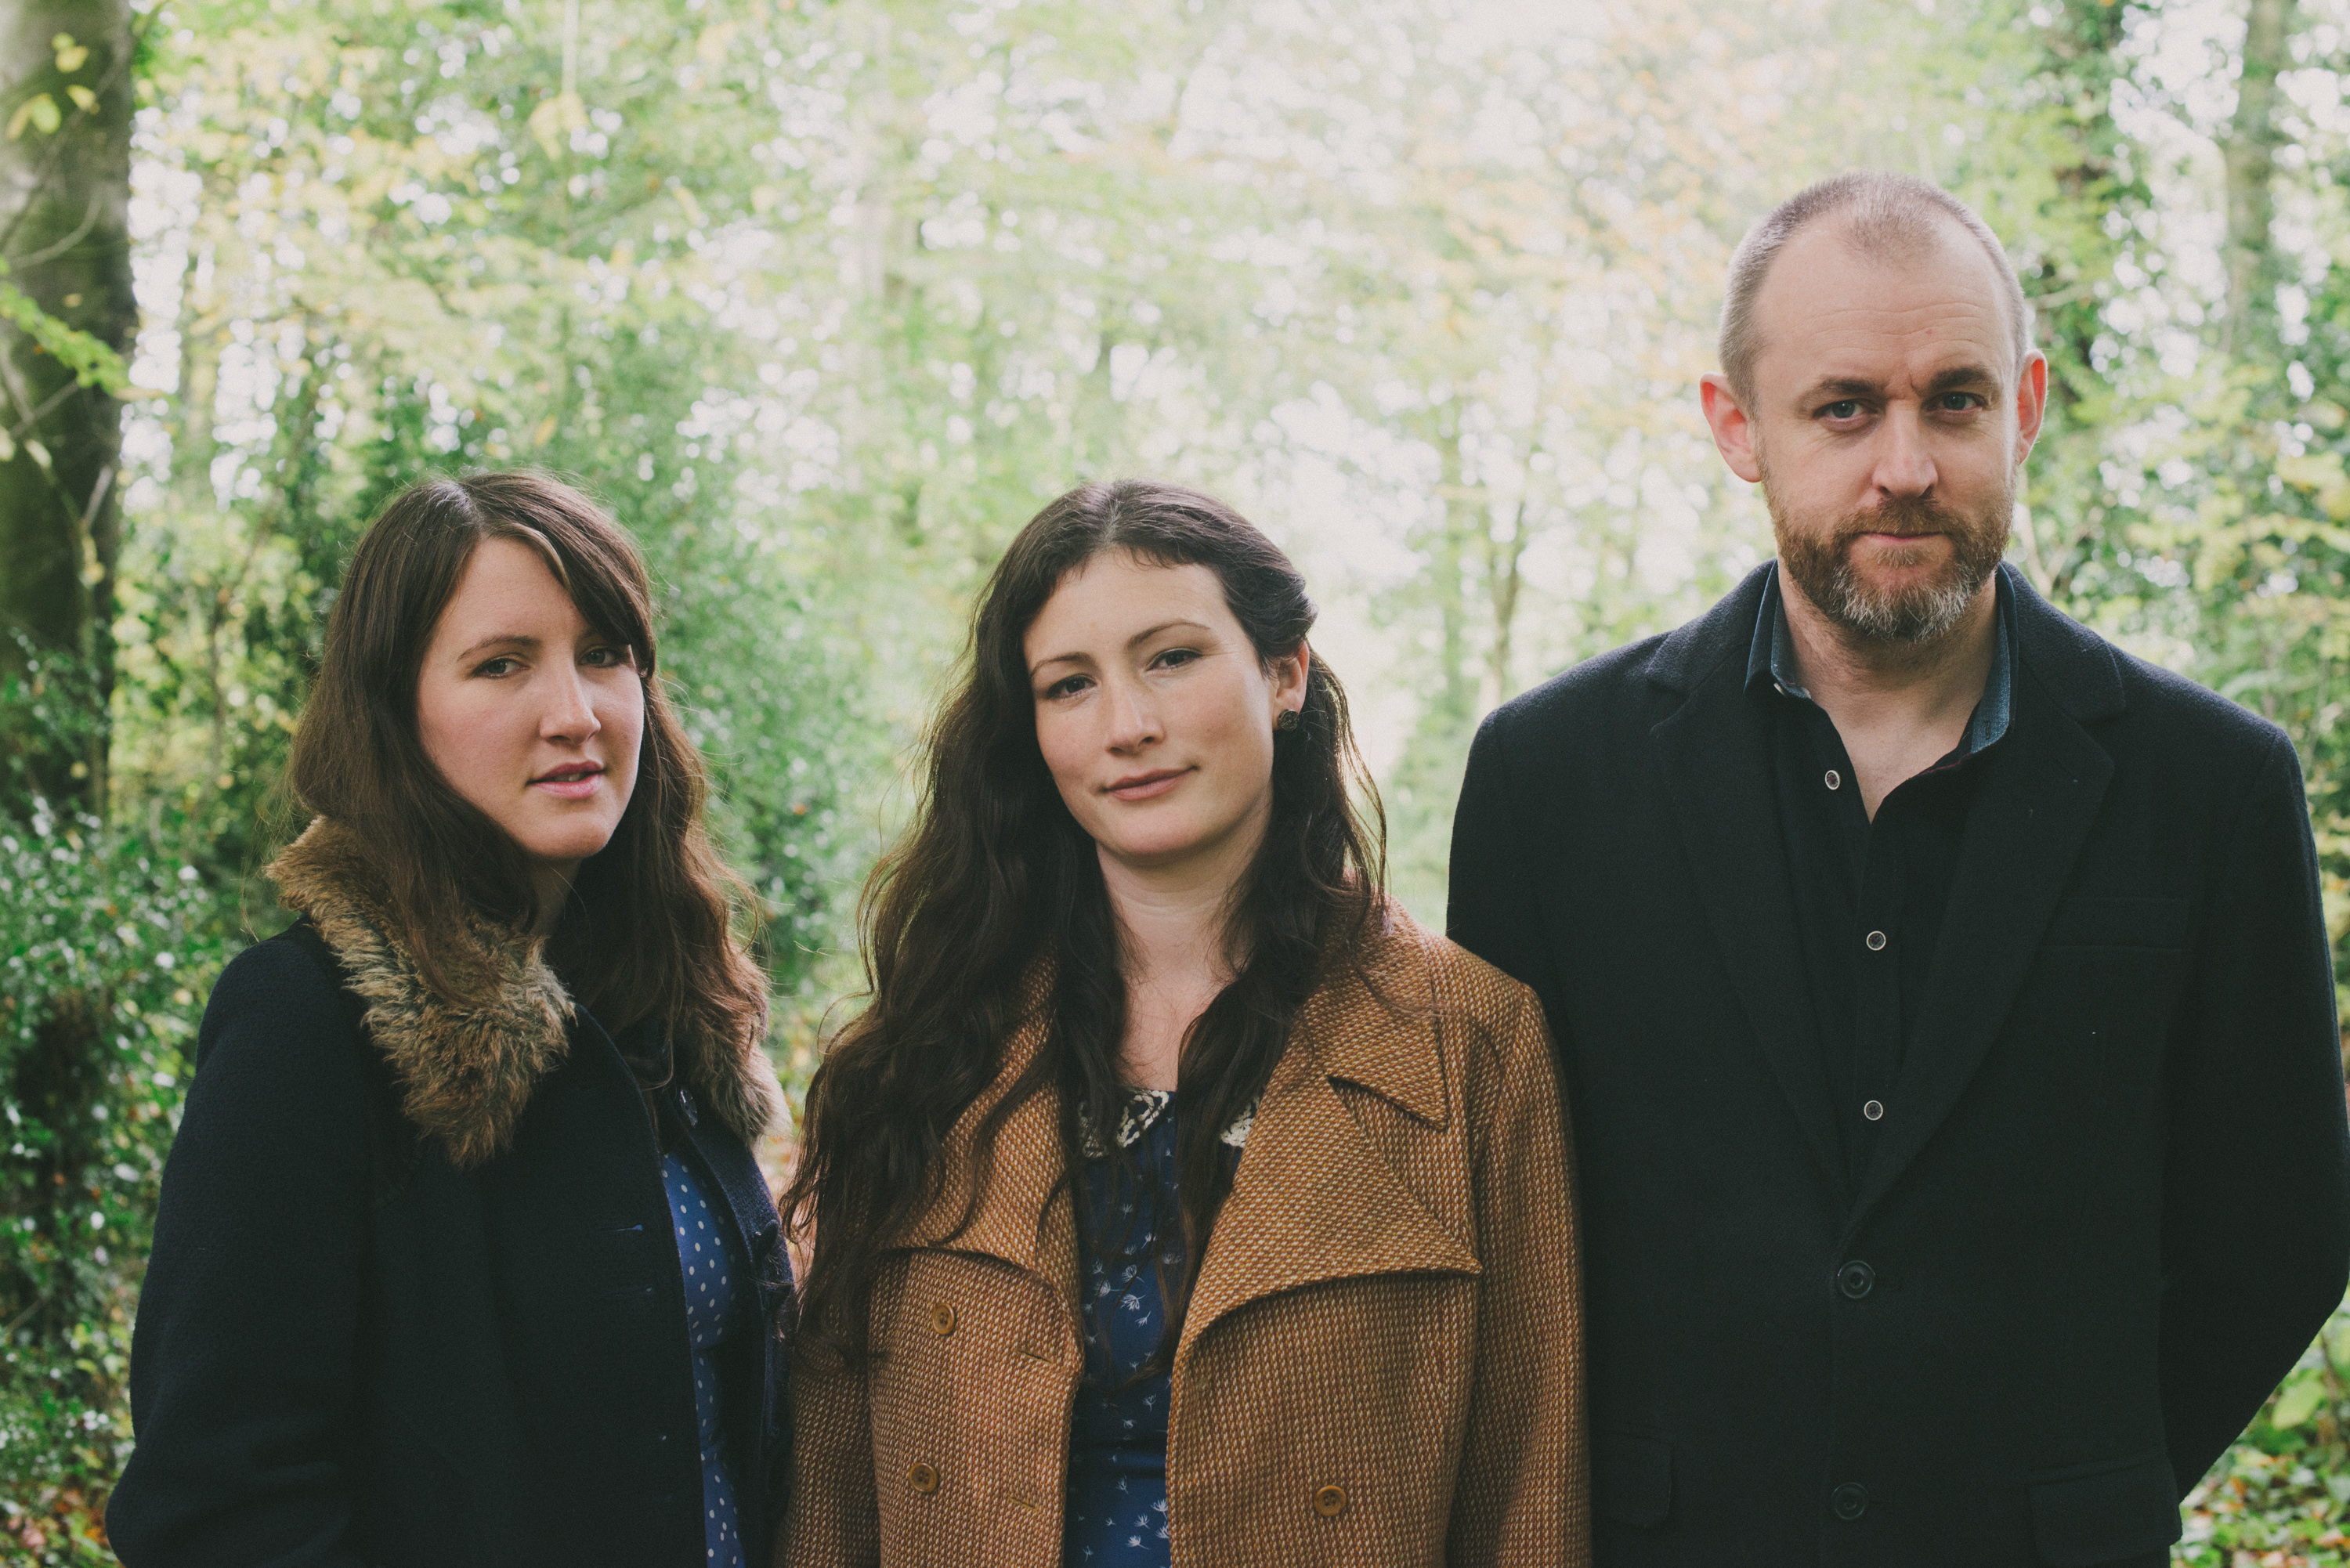 The Unthanks image by Sarah Mason